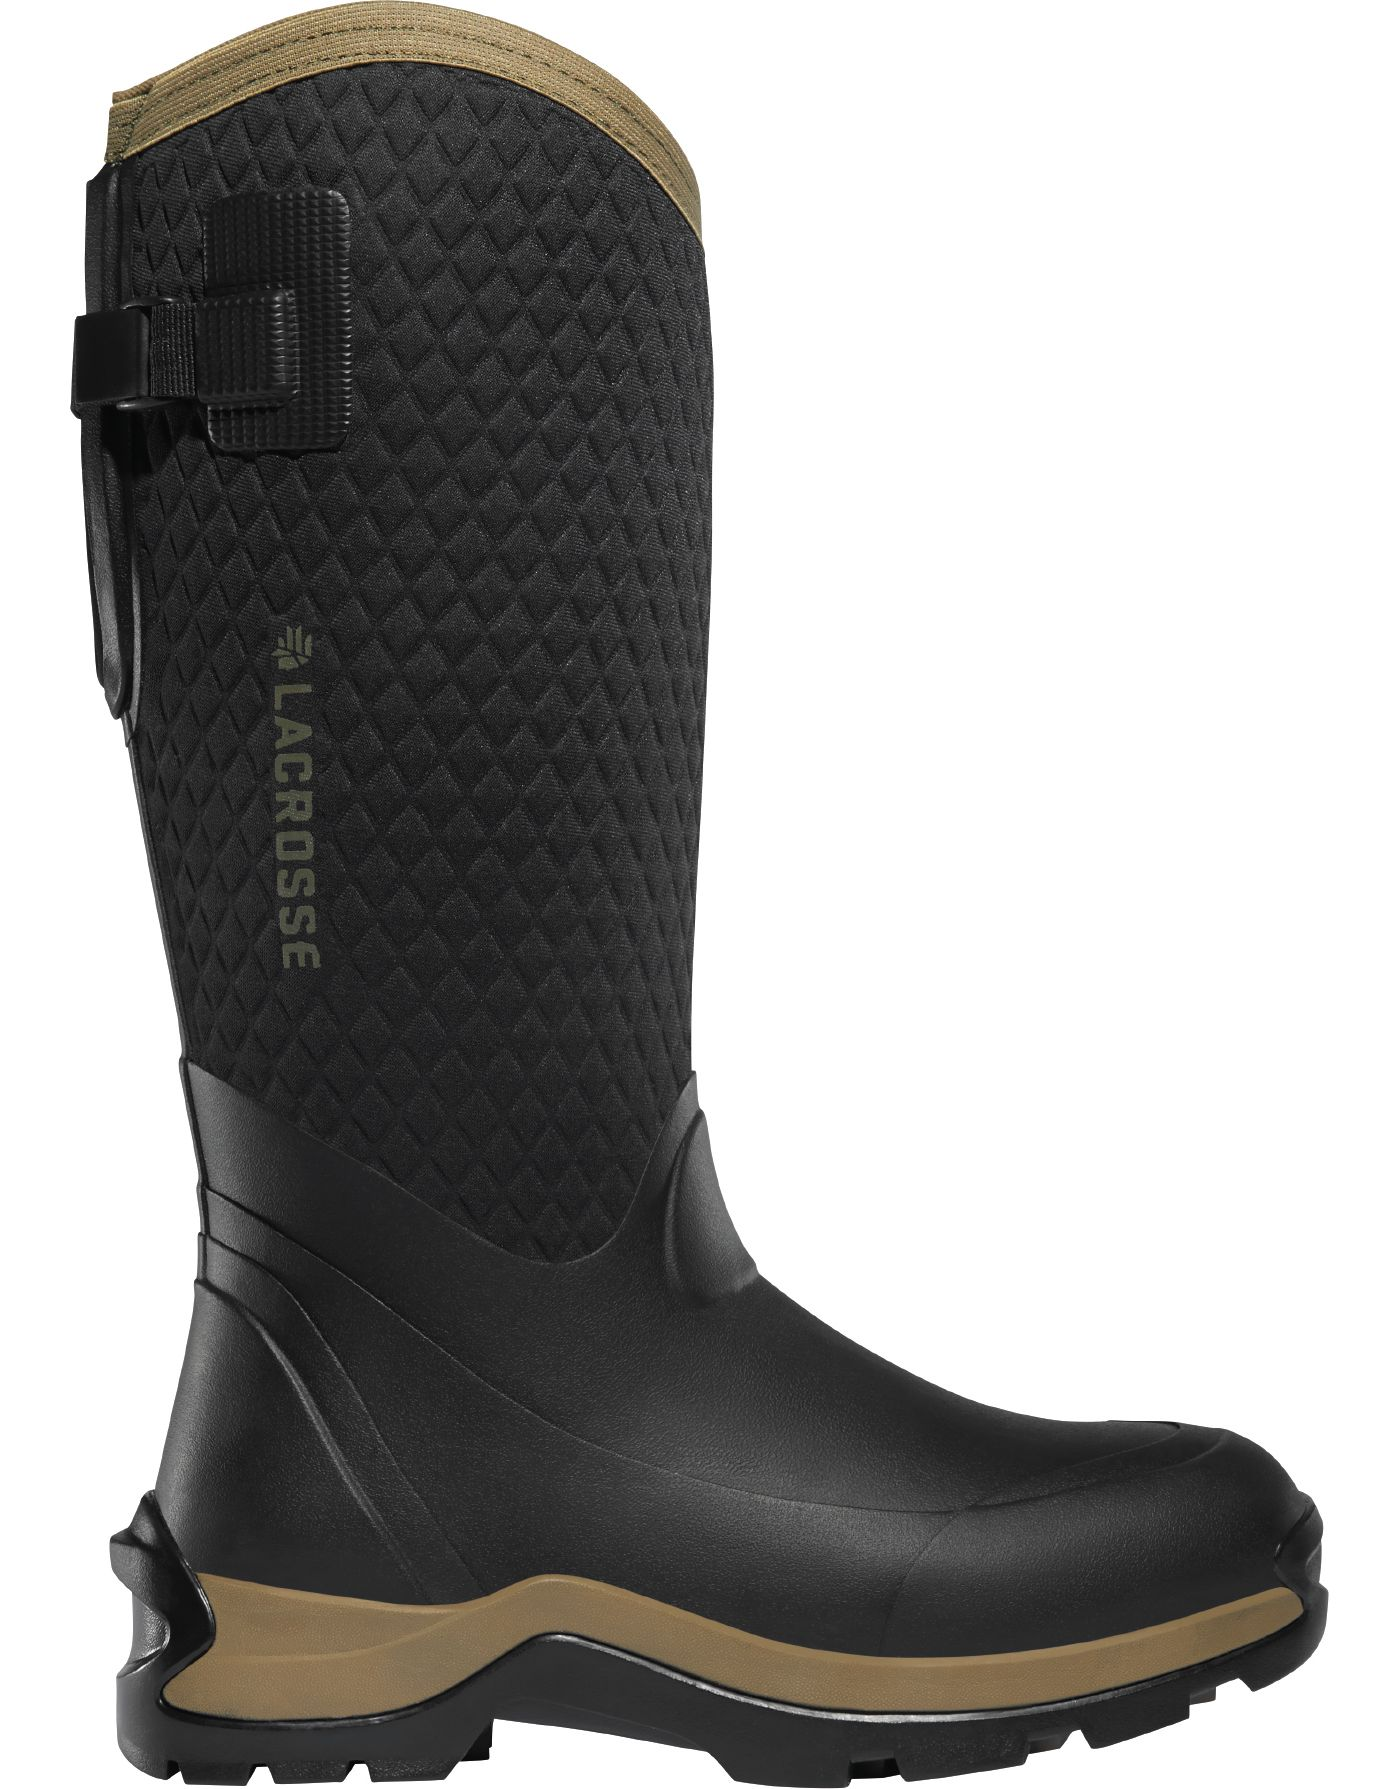 LaCrosse Women's Alpha Thermal 14'' 7.0mm Waterproof Work Boots